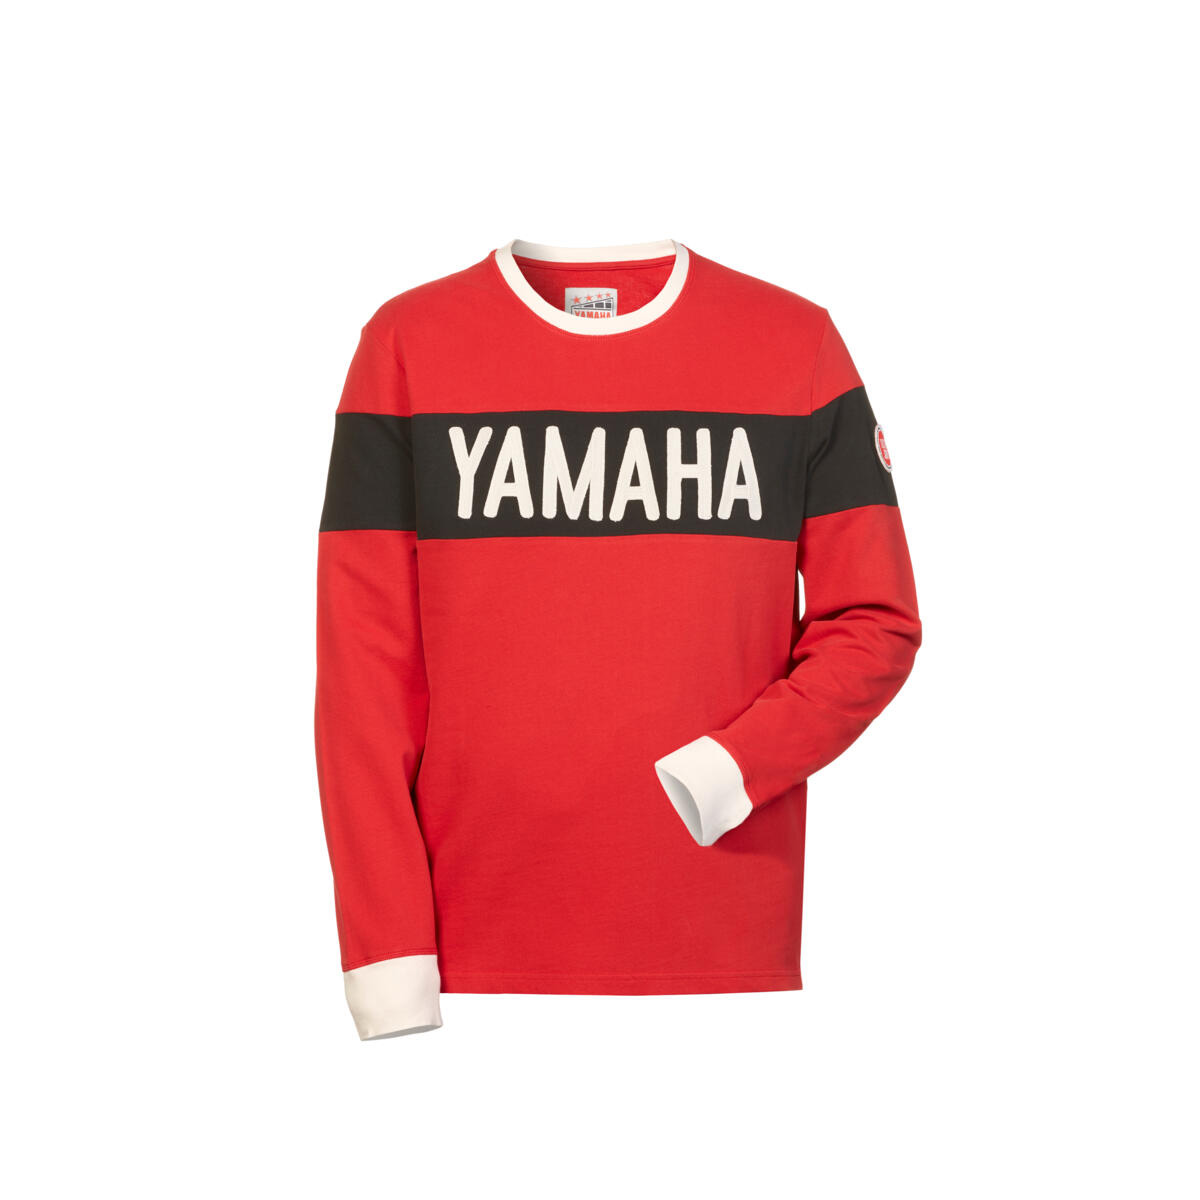 Yamaha clothing and apparel available online